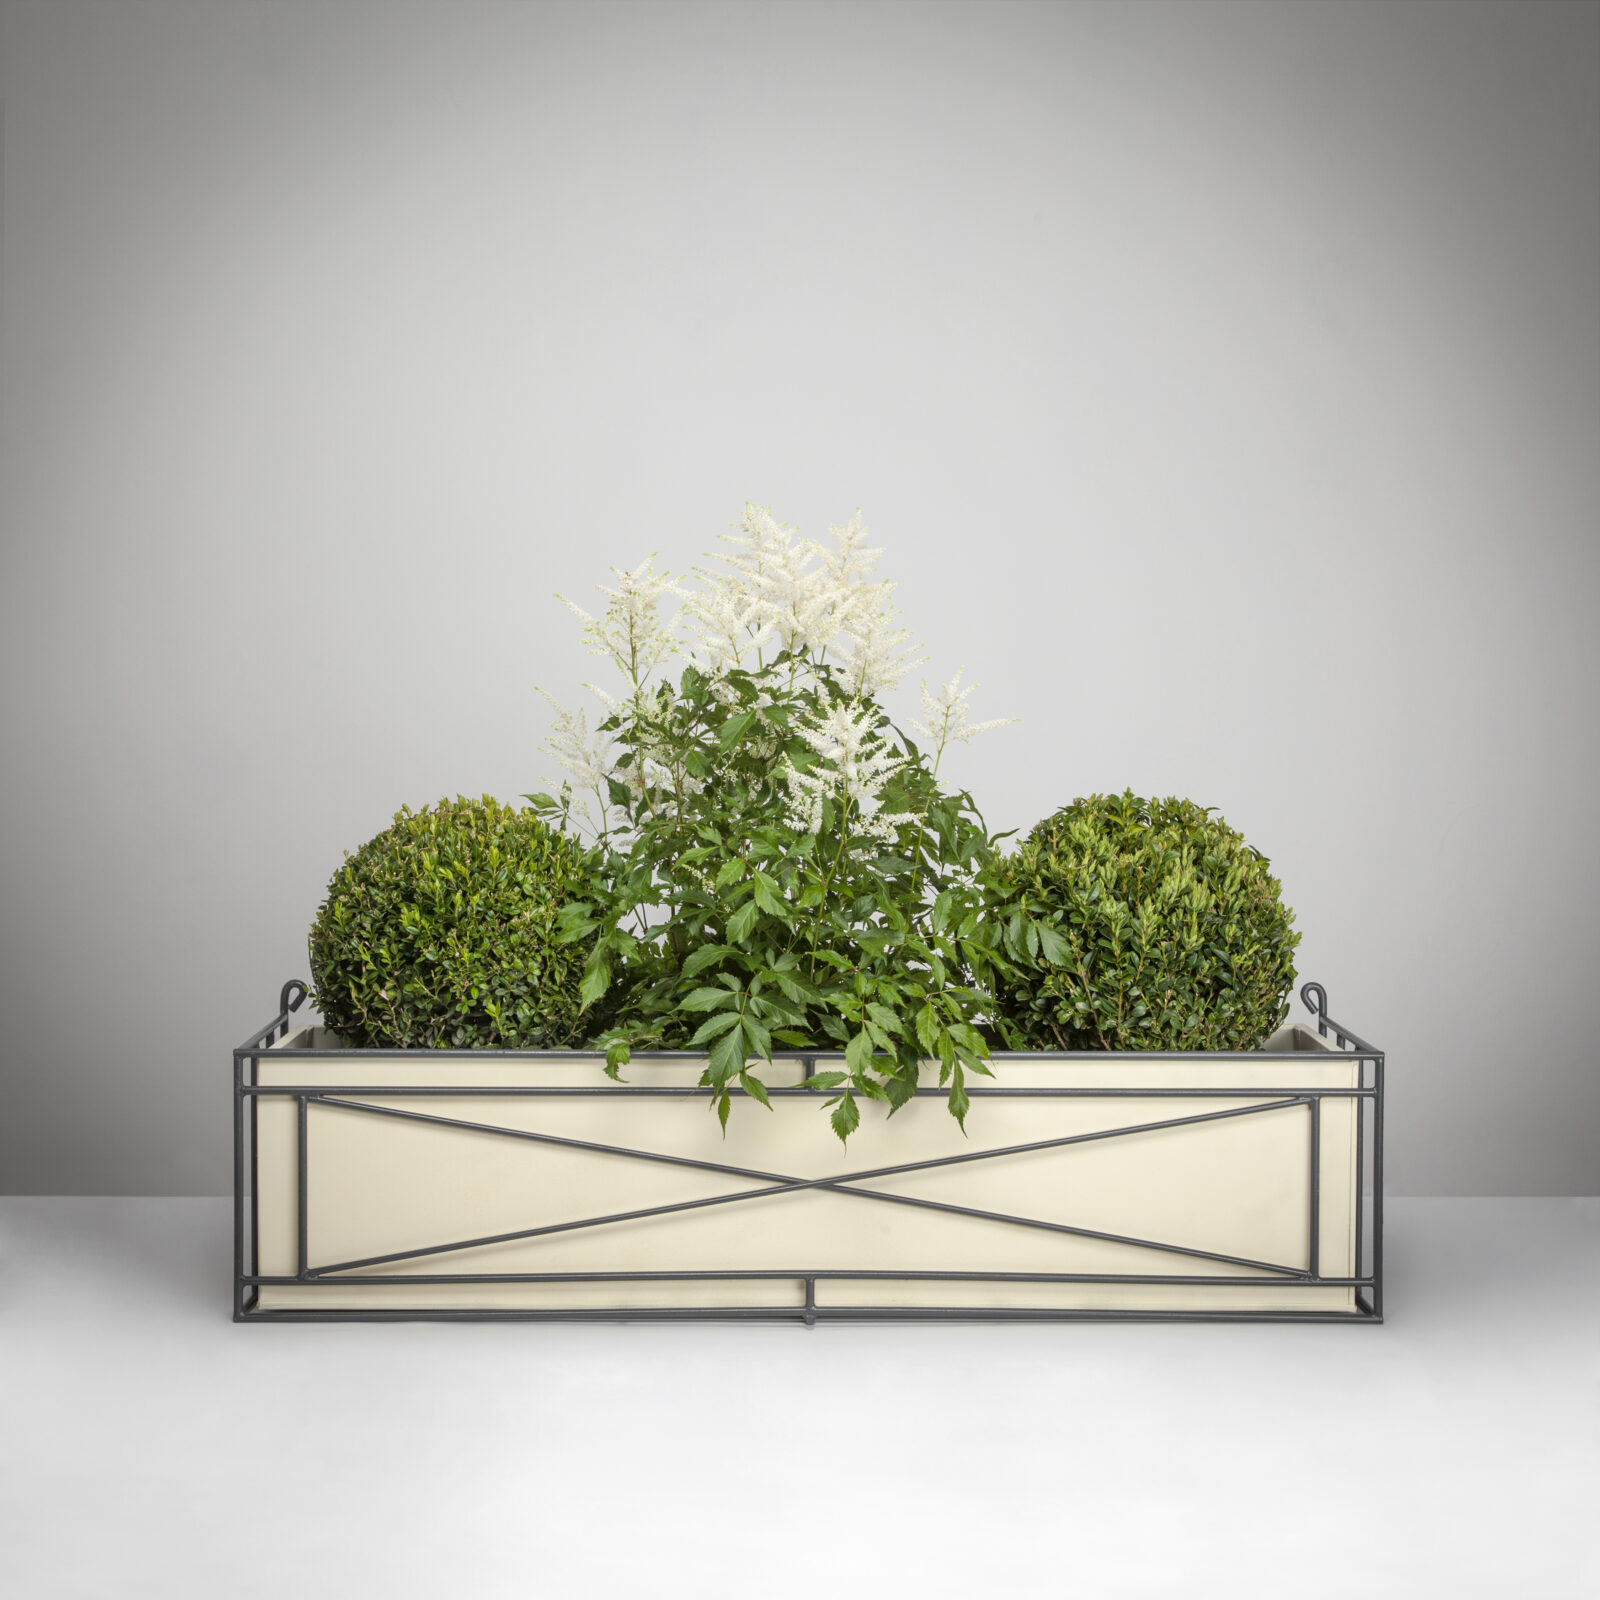 3 Wrought Iron Window Box with Planter